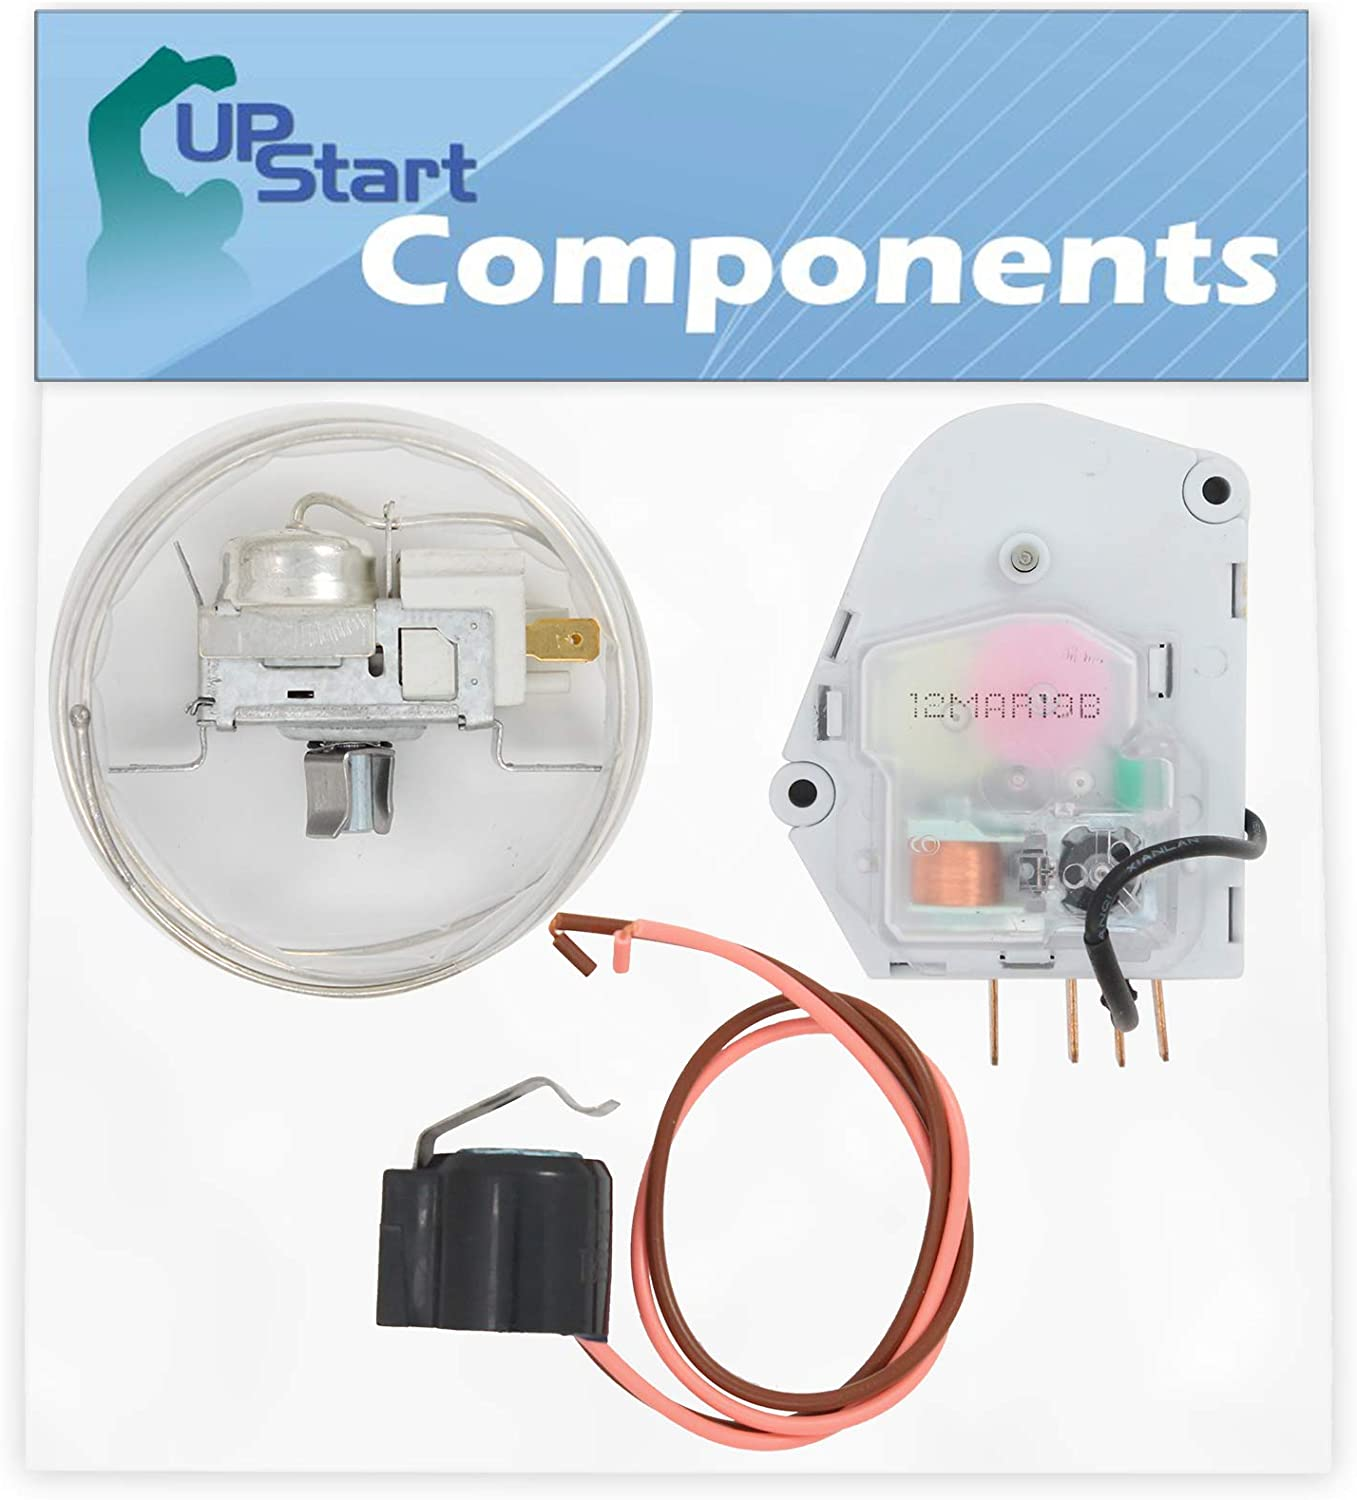 2198202 Cold Control Thermostat, W10225581 Defrost Thermostat & W10822278 Defrost Timer Replacement for Estate TS25AEXHW01 Refrigerator - Compatible with WP2198202, W10225581 & W10822278